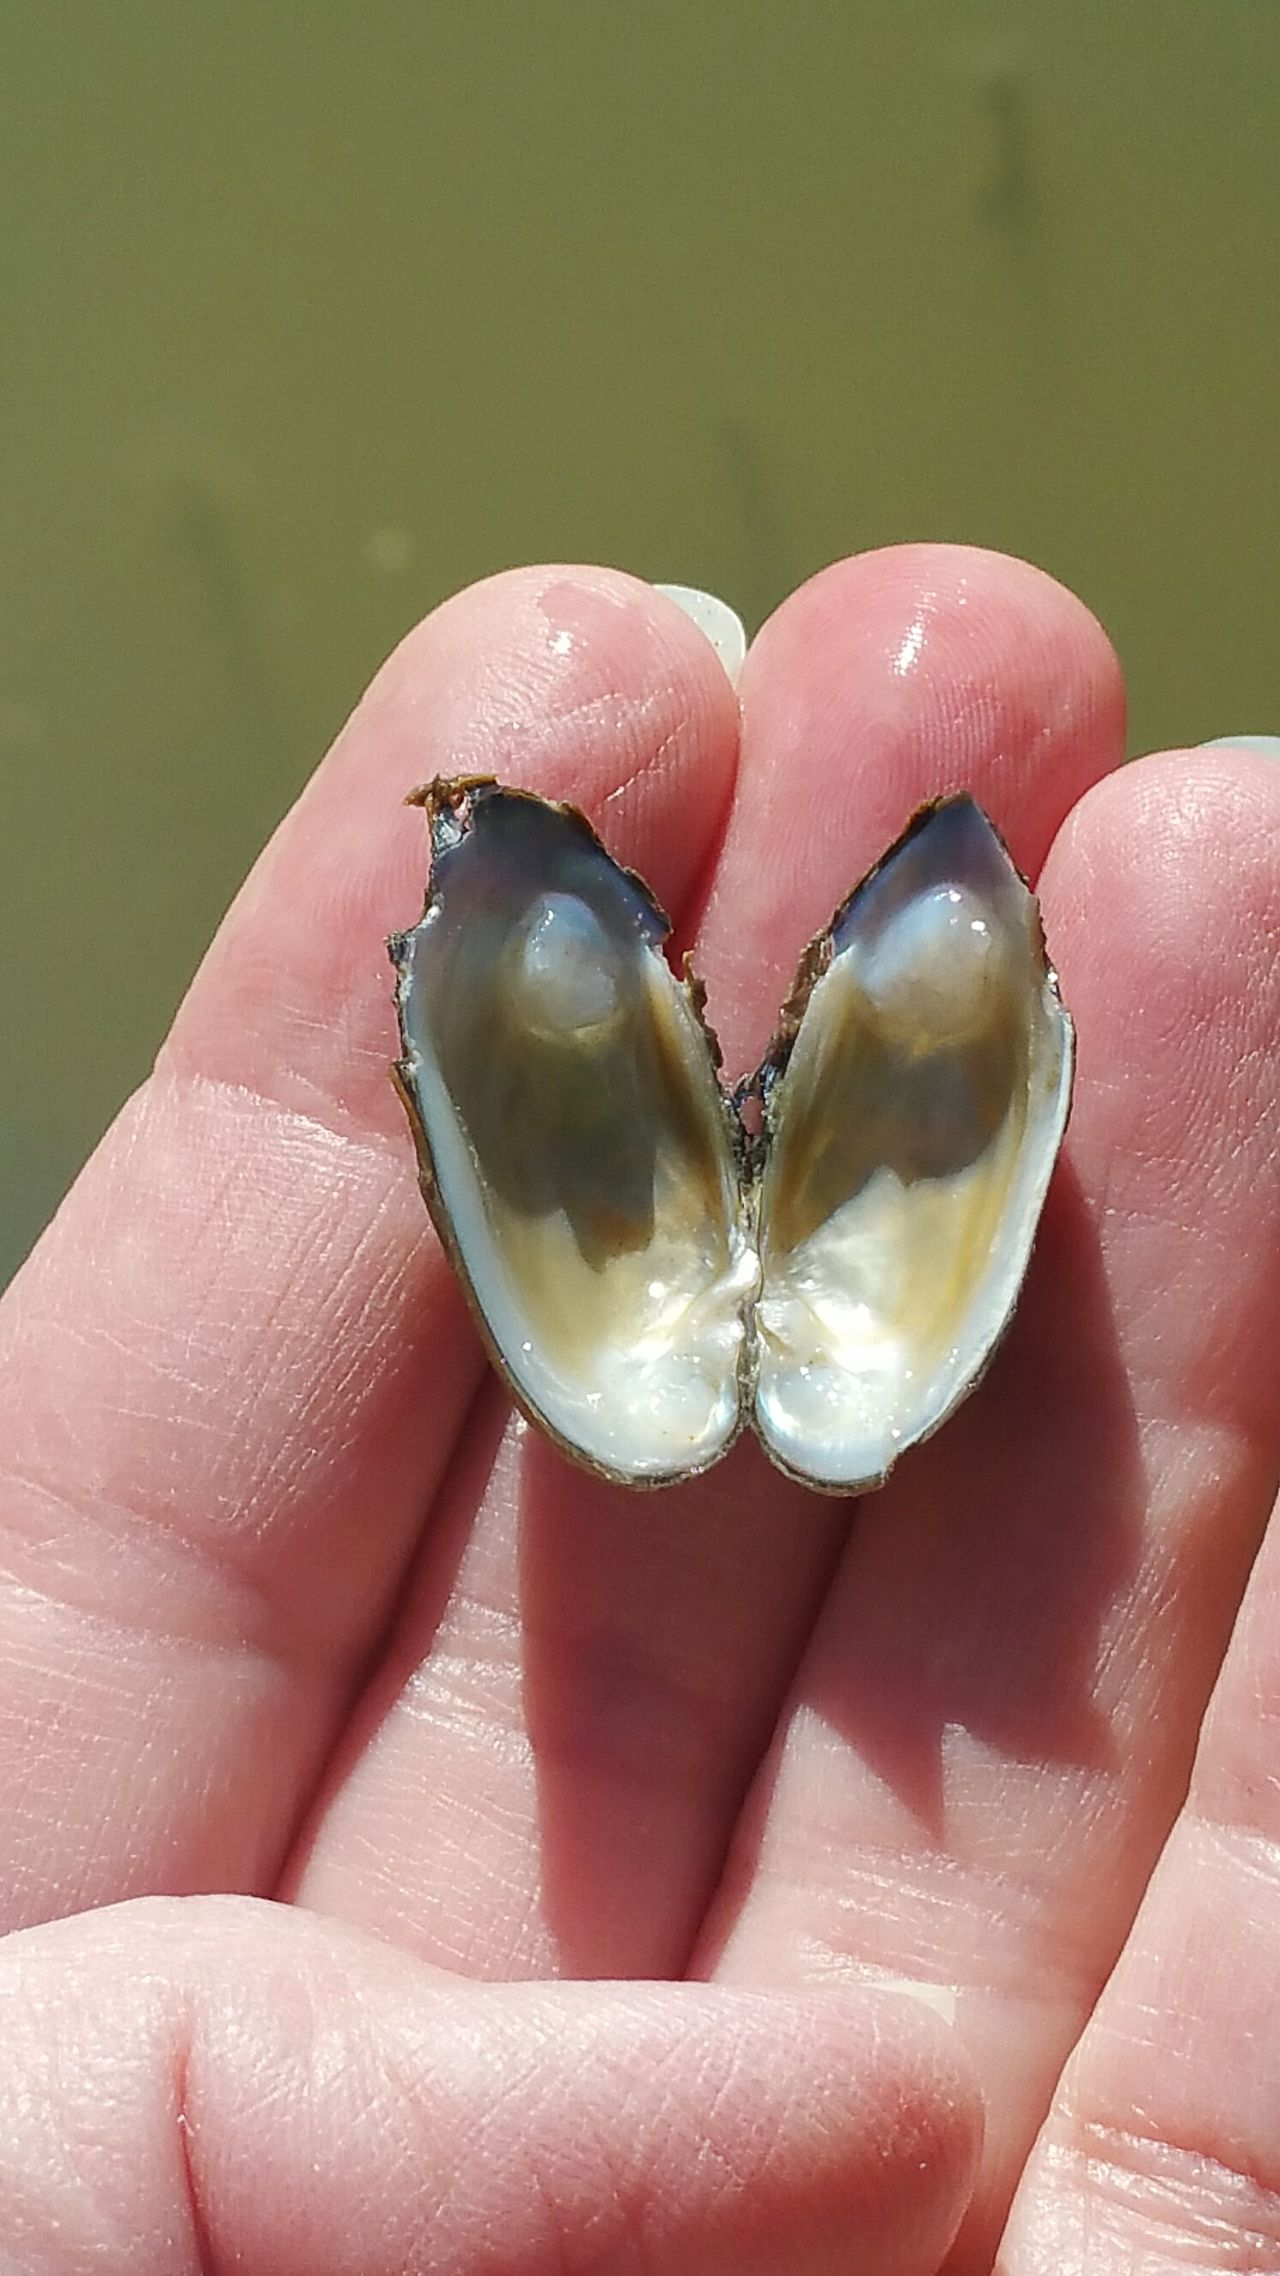 Looks like someone had a snack Human Body Part Human Hand Close-up One Person People Indoors  Day Adults Only Adult Beauty In Nature Eyemphotos Popular Photos Photography Naturephotography Naturelovers Eye Em Nature Lover Outdoors Mussel Shell Environment My Photography